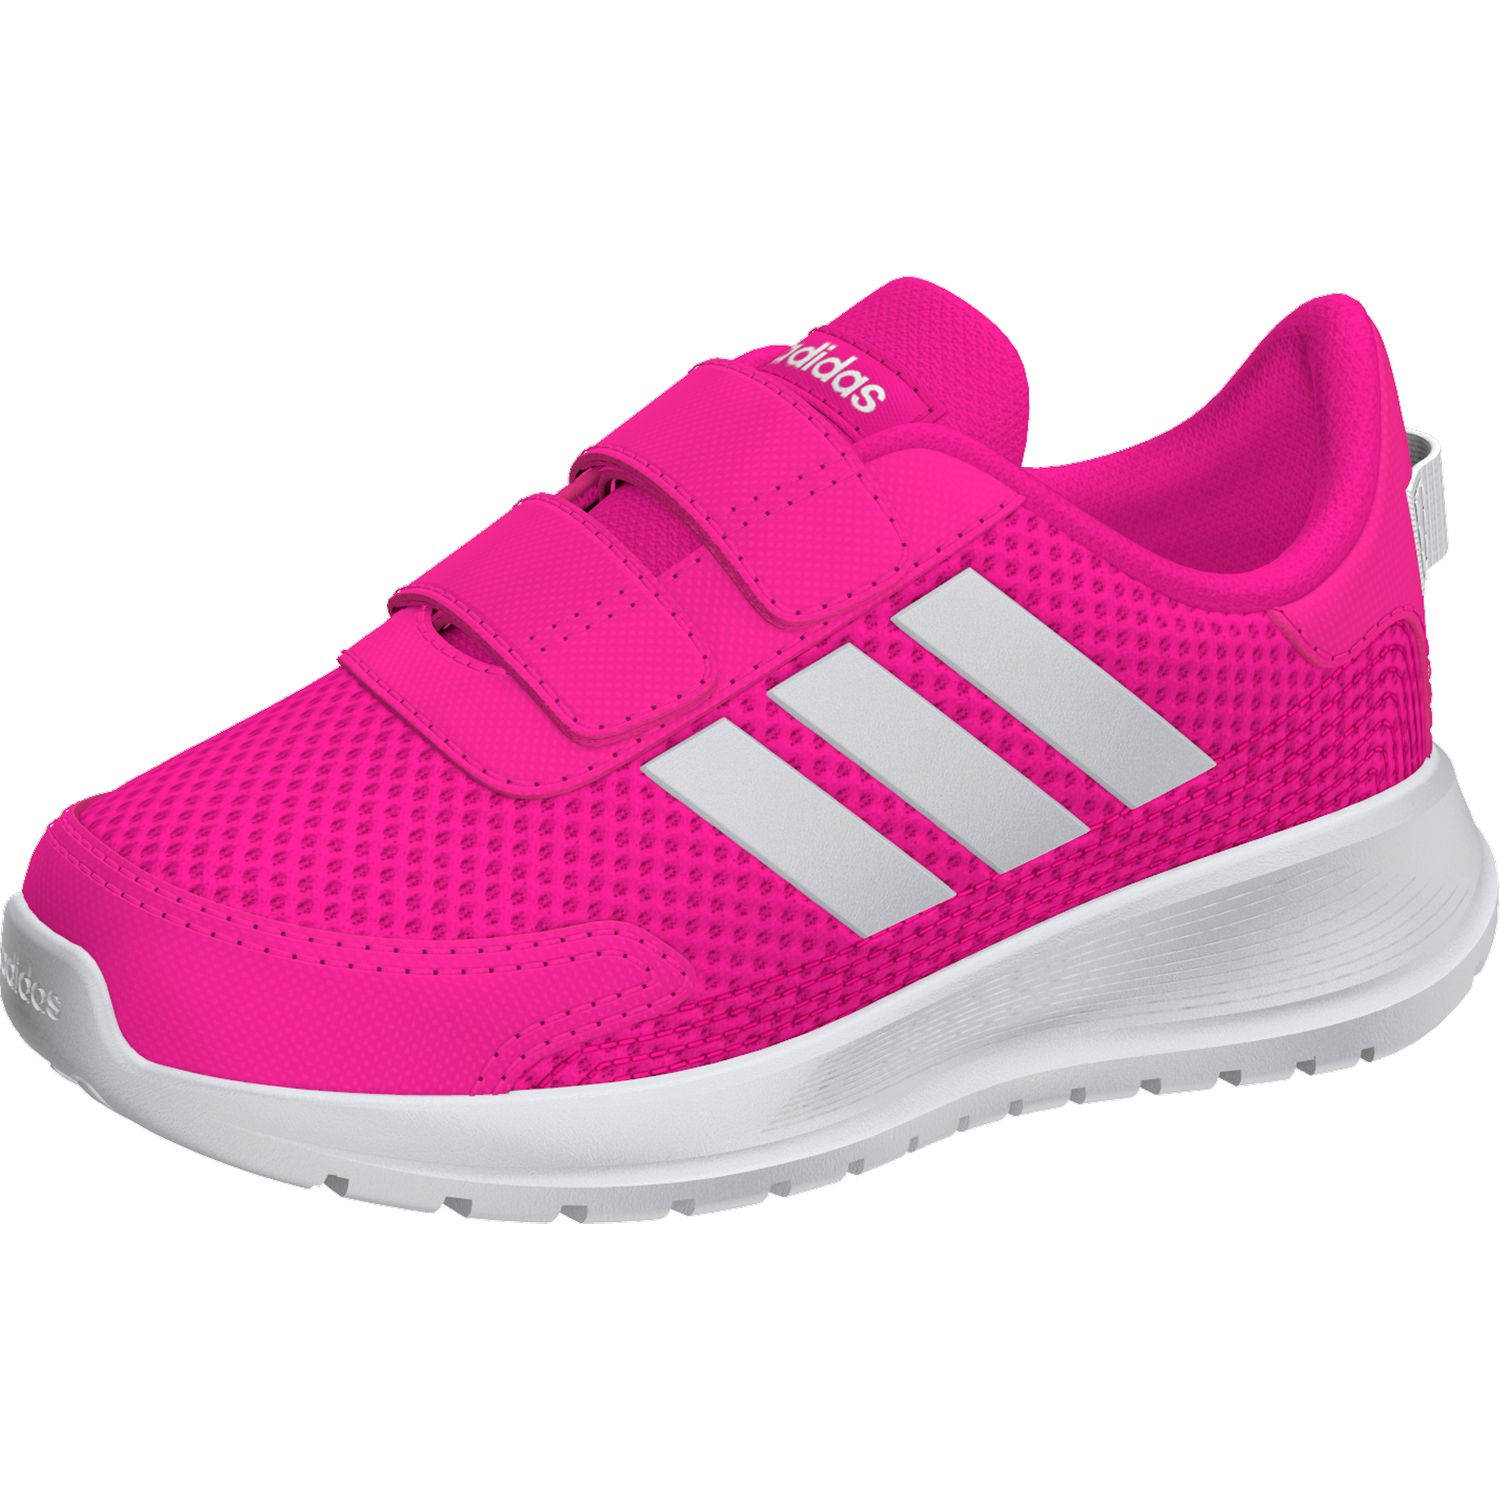 Trainers Running EG4141 Pink Adidas about Children Shoes Performance Inf Details Tensaur Run vbI7yYf6g